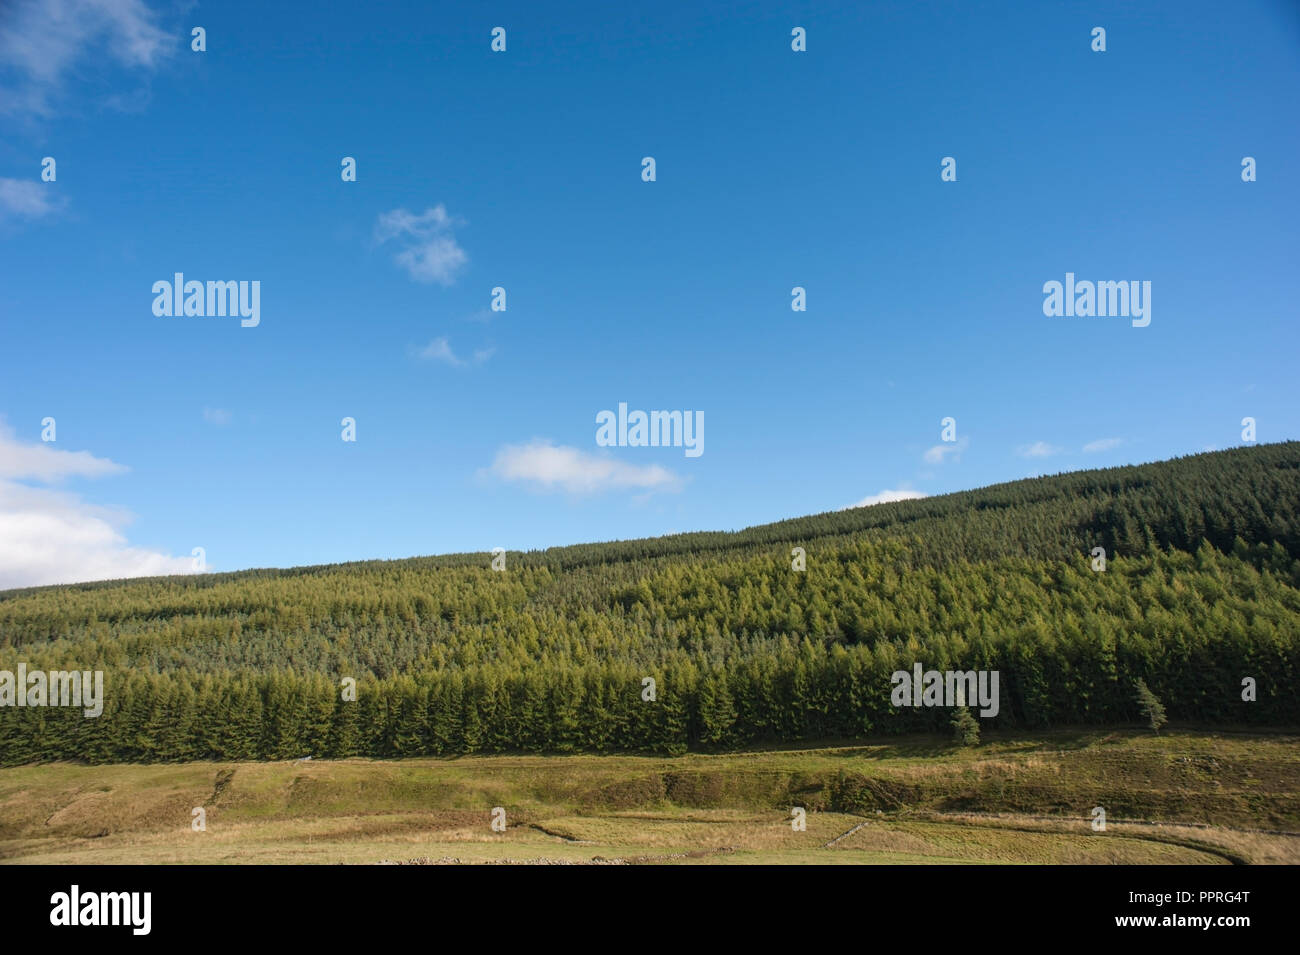 Scottish pine forest, Glen Isla, Scotland. - Stock Image